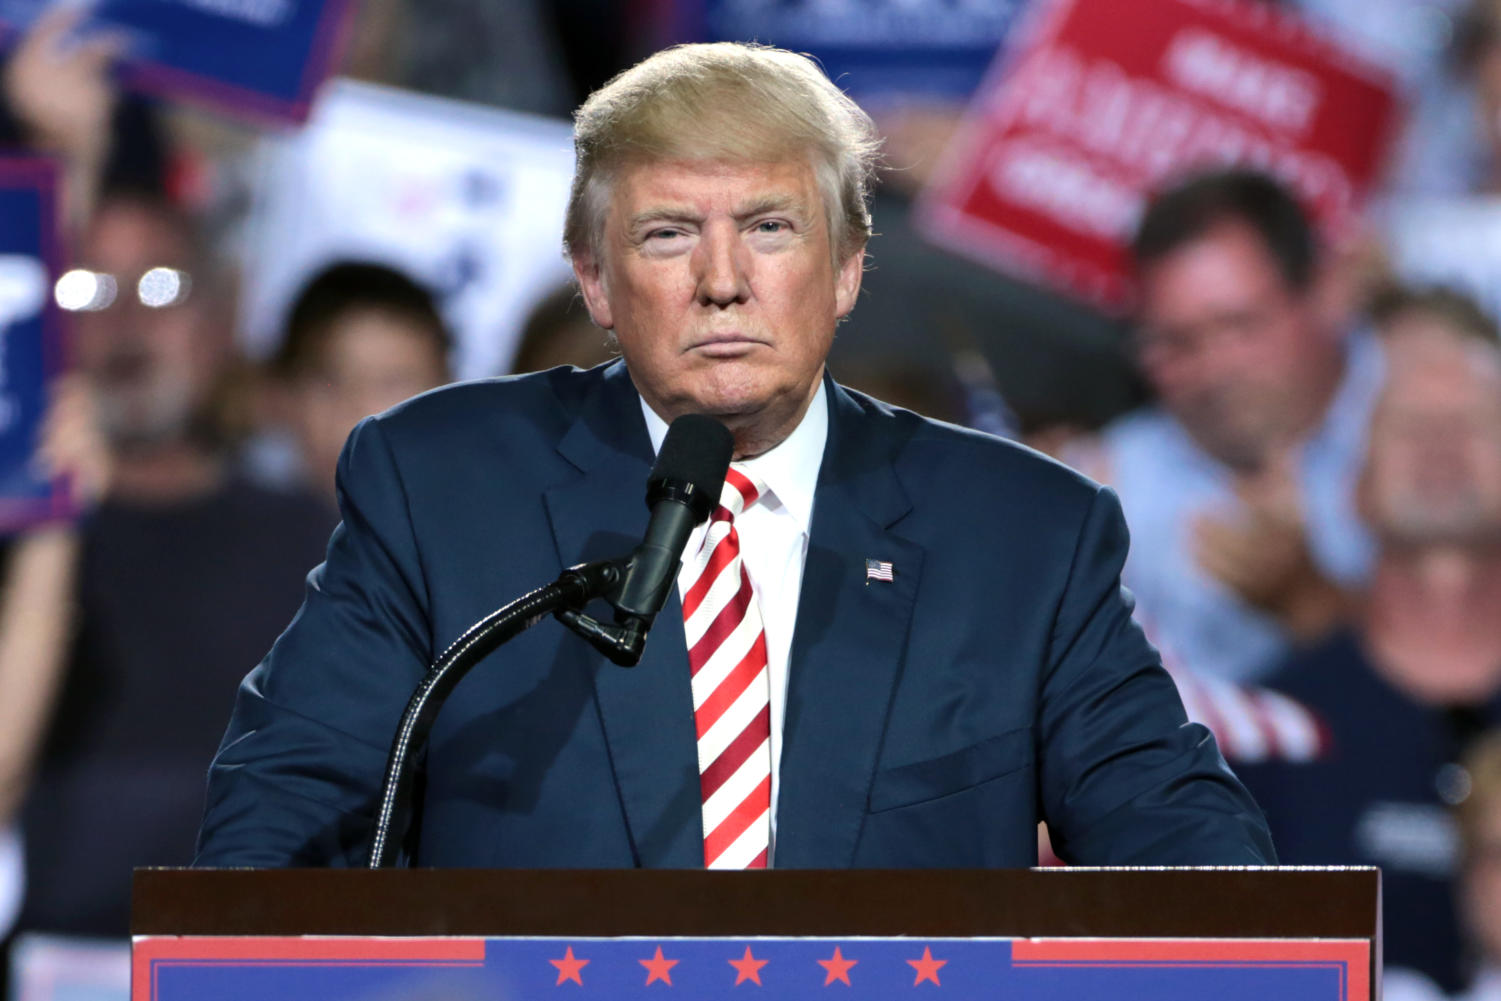 President Donald Trump gives a speech at a rally.